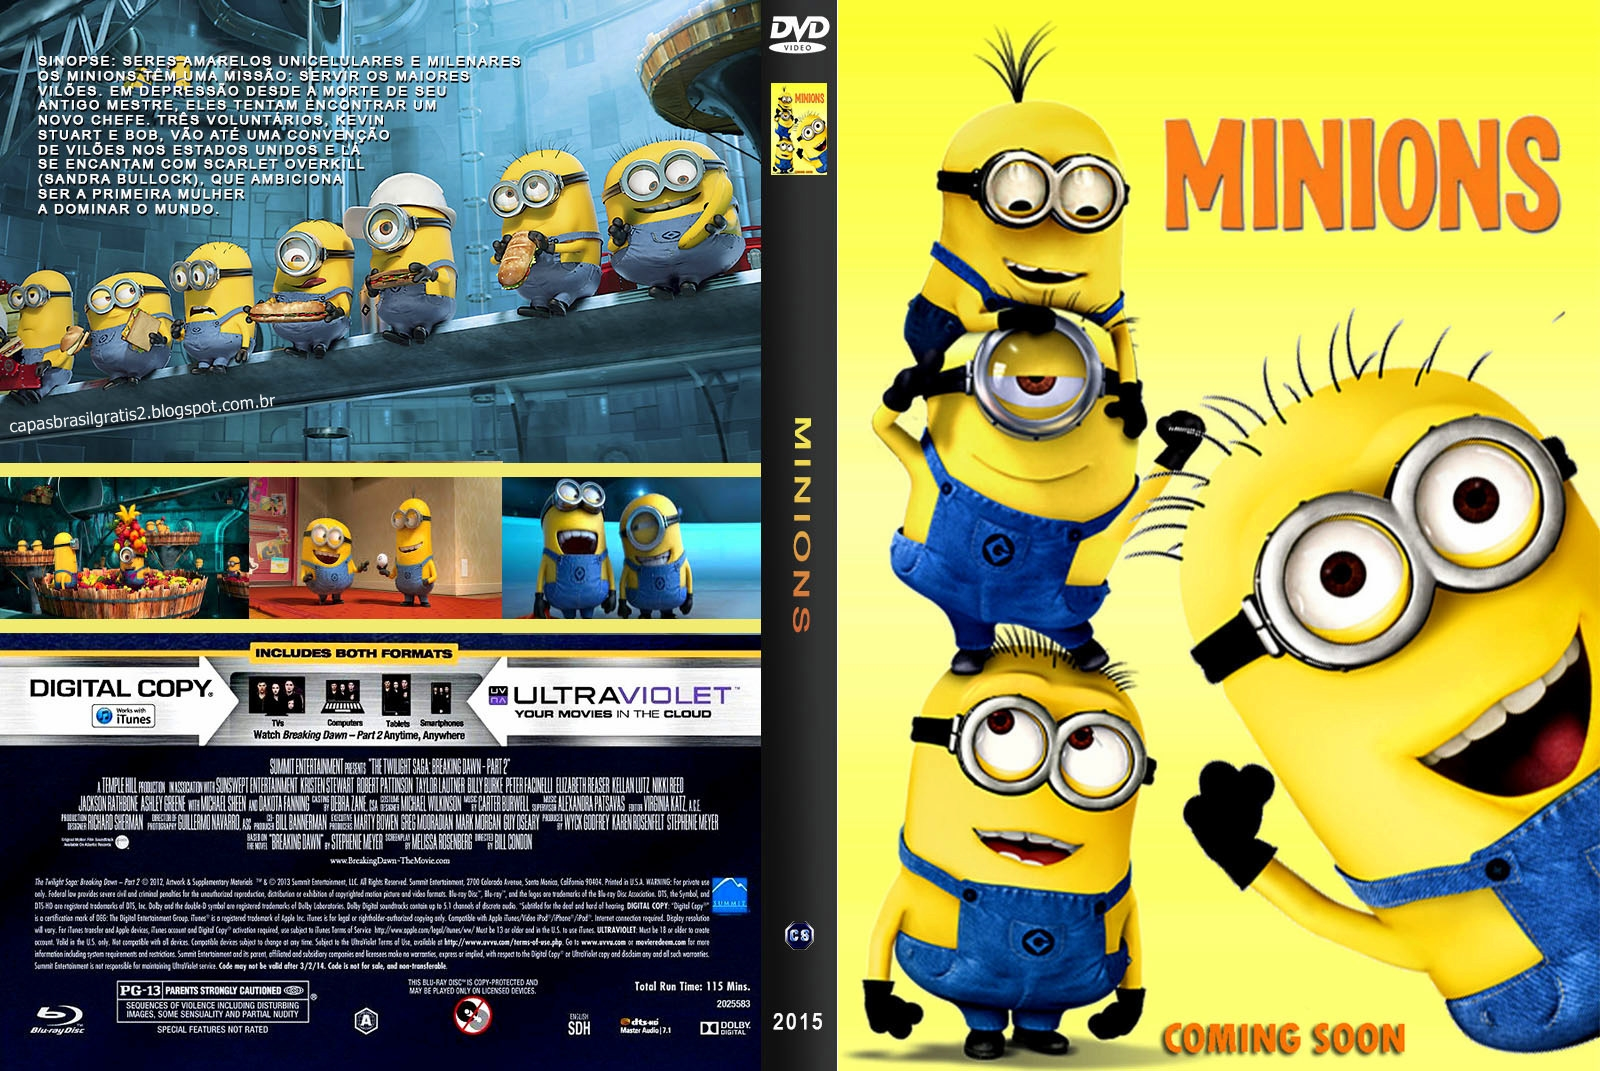 Download Minions DVD-R Minions